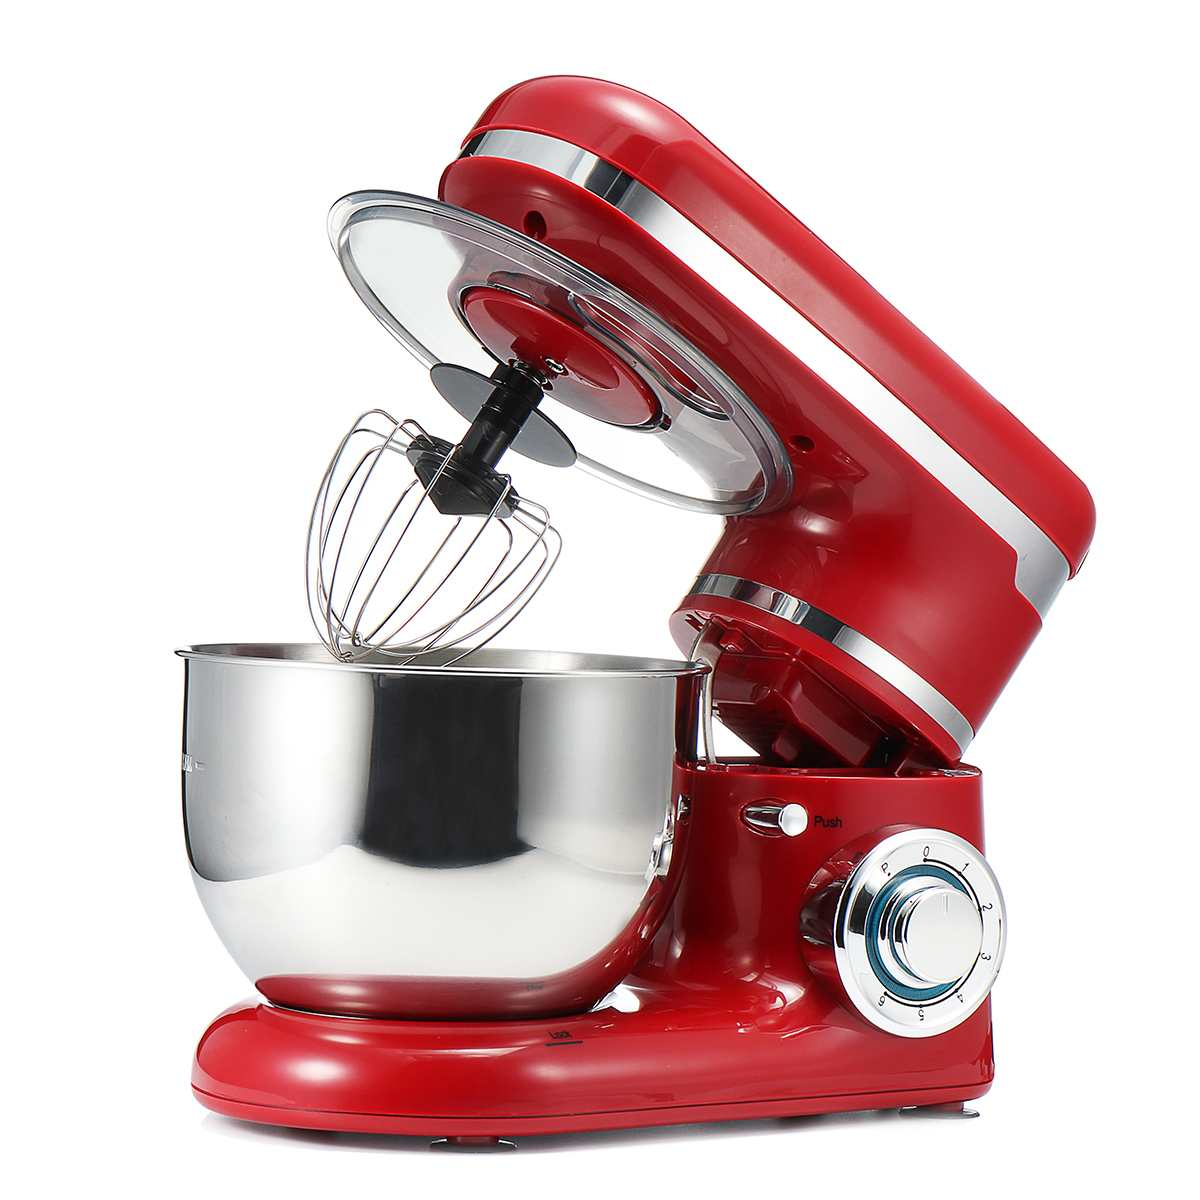 1200W 4L Stainless Steel Bowl Mixer Kitchen Blenders Mixer Cream Eggs Whisk Cake Maker Bread Mixer Machine Food Processor